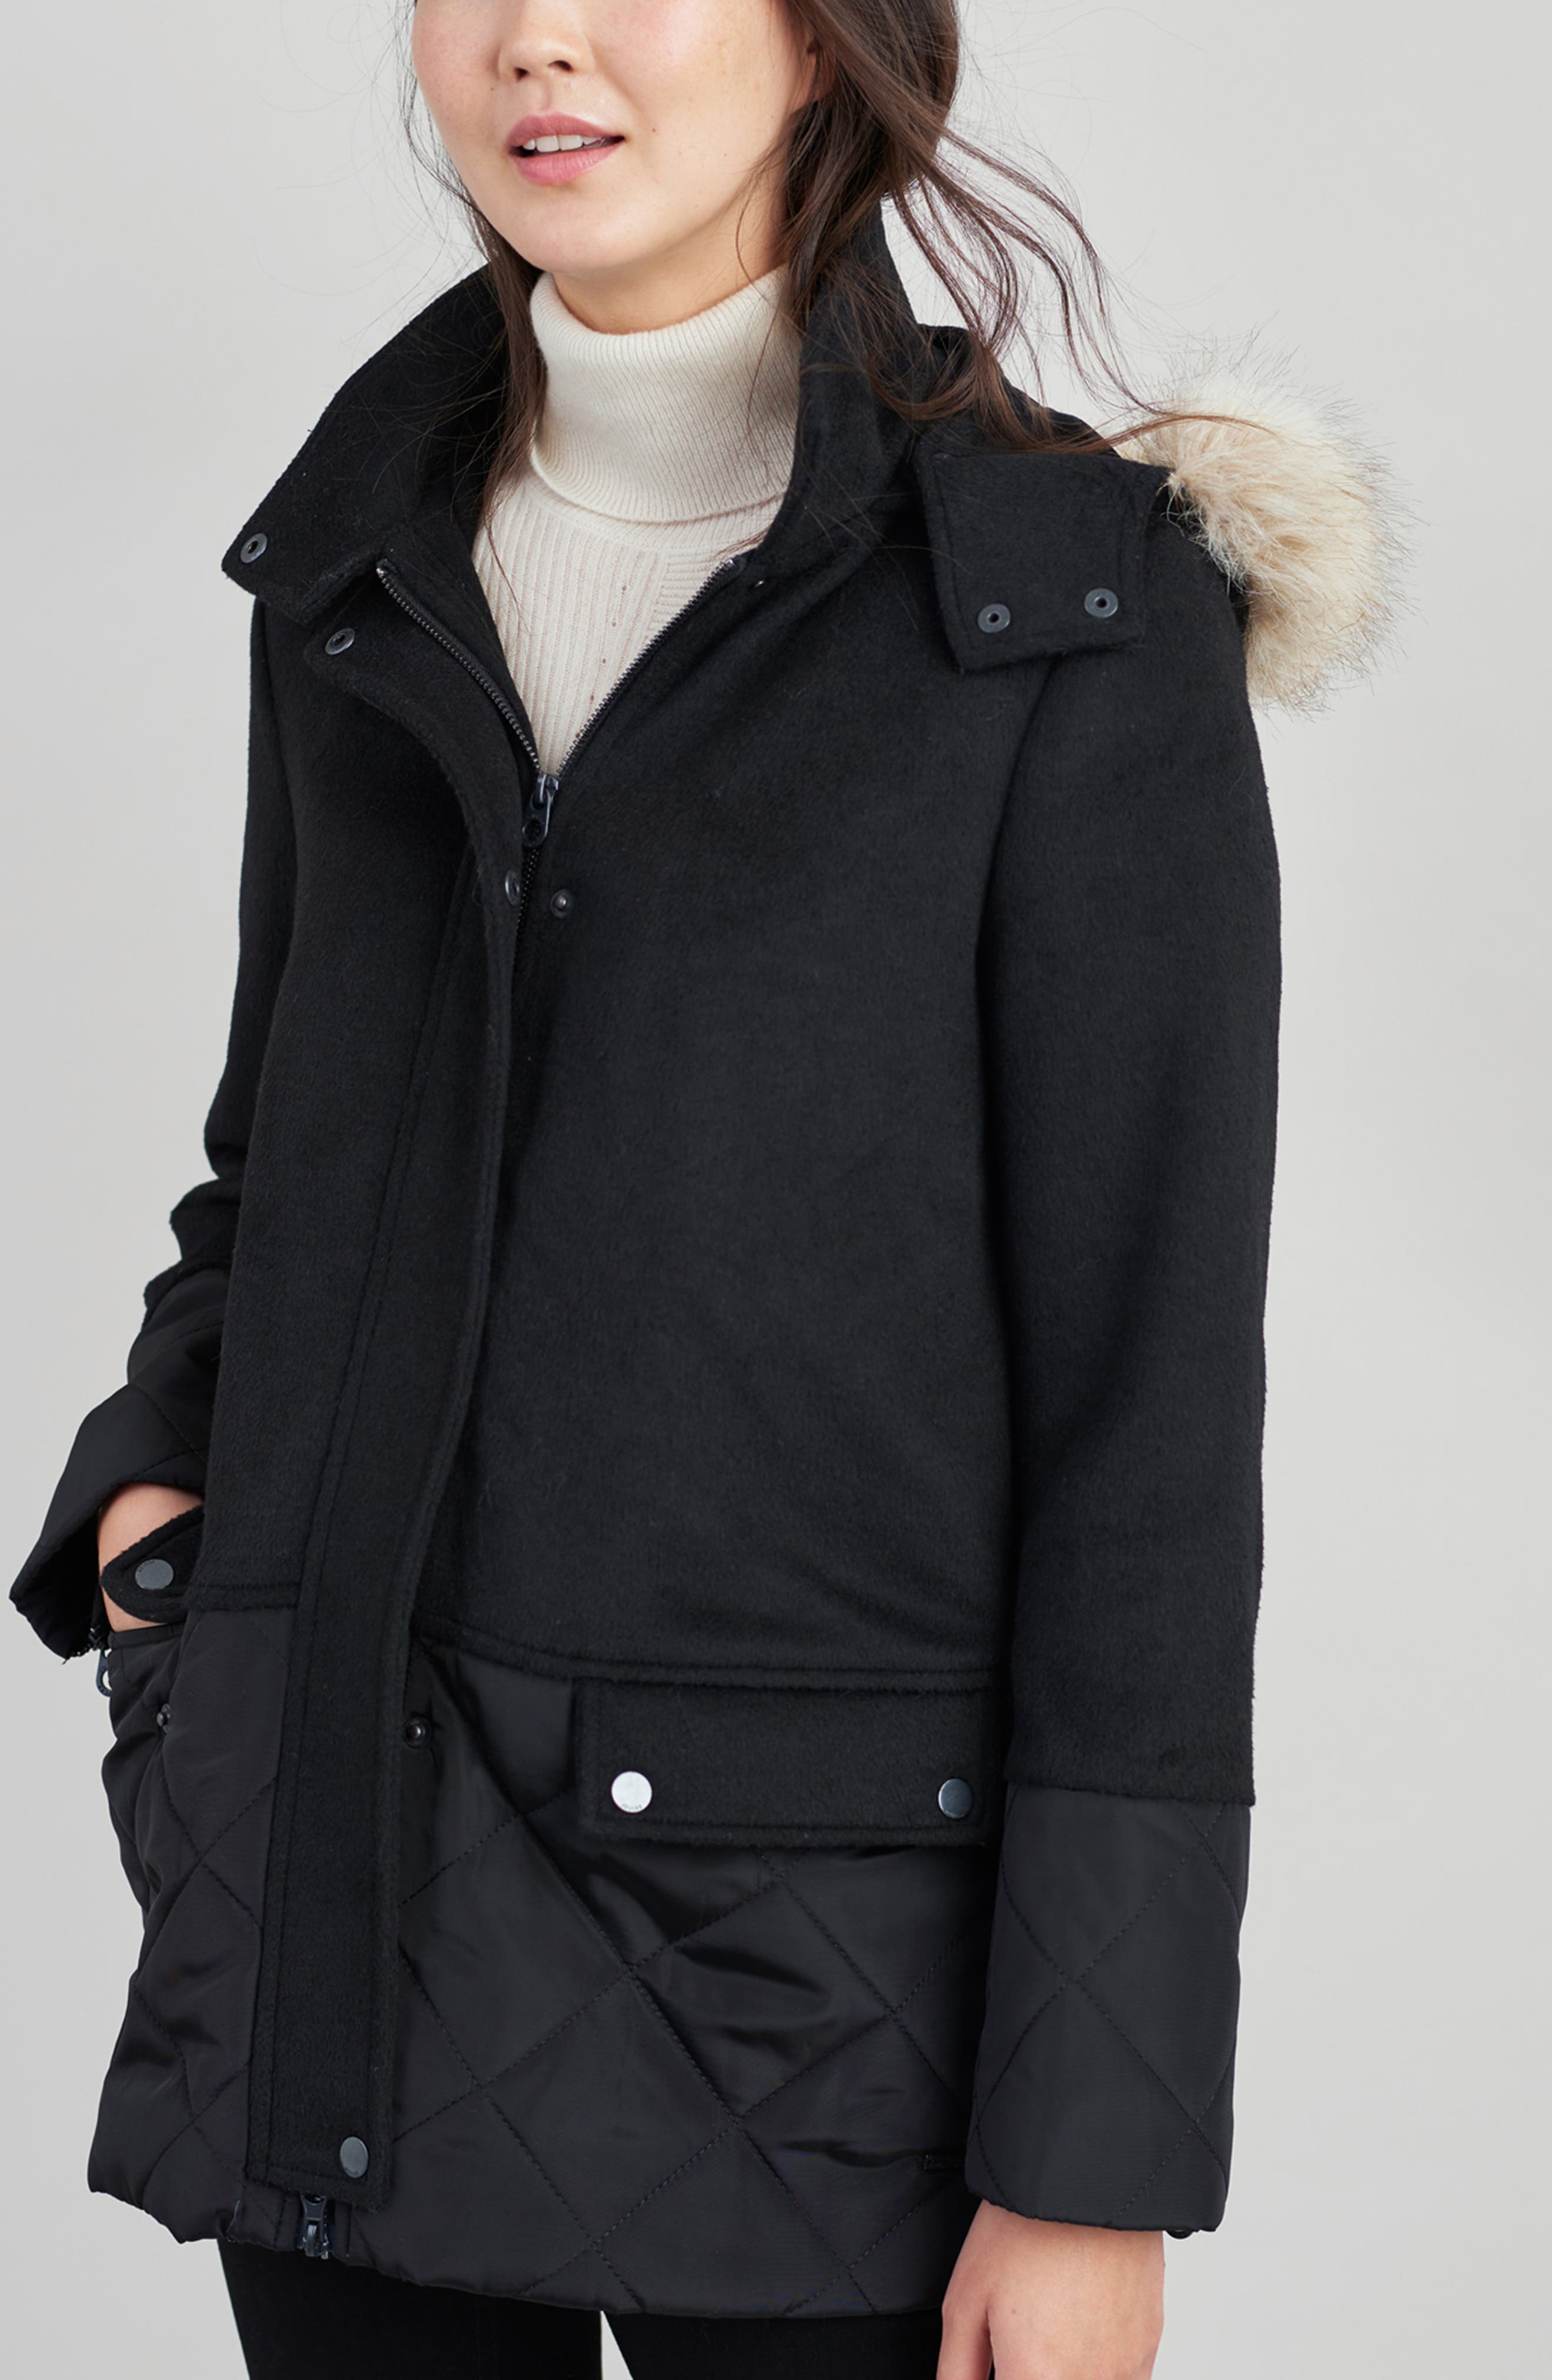 Mixed Texture Hooded Coat with Faux Fur Trim,                             Alternate thumbnail 14, color,                             BLACK